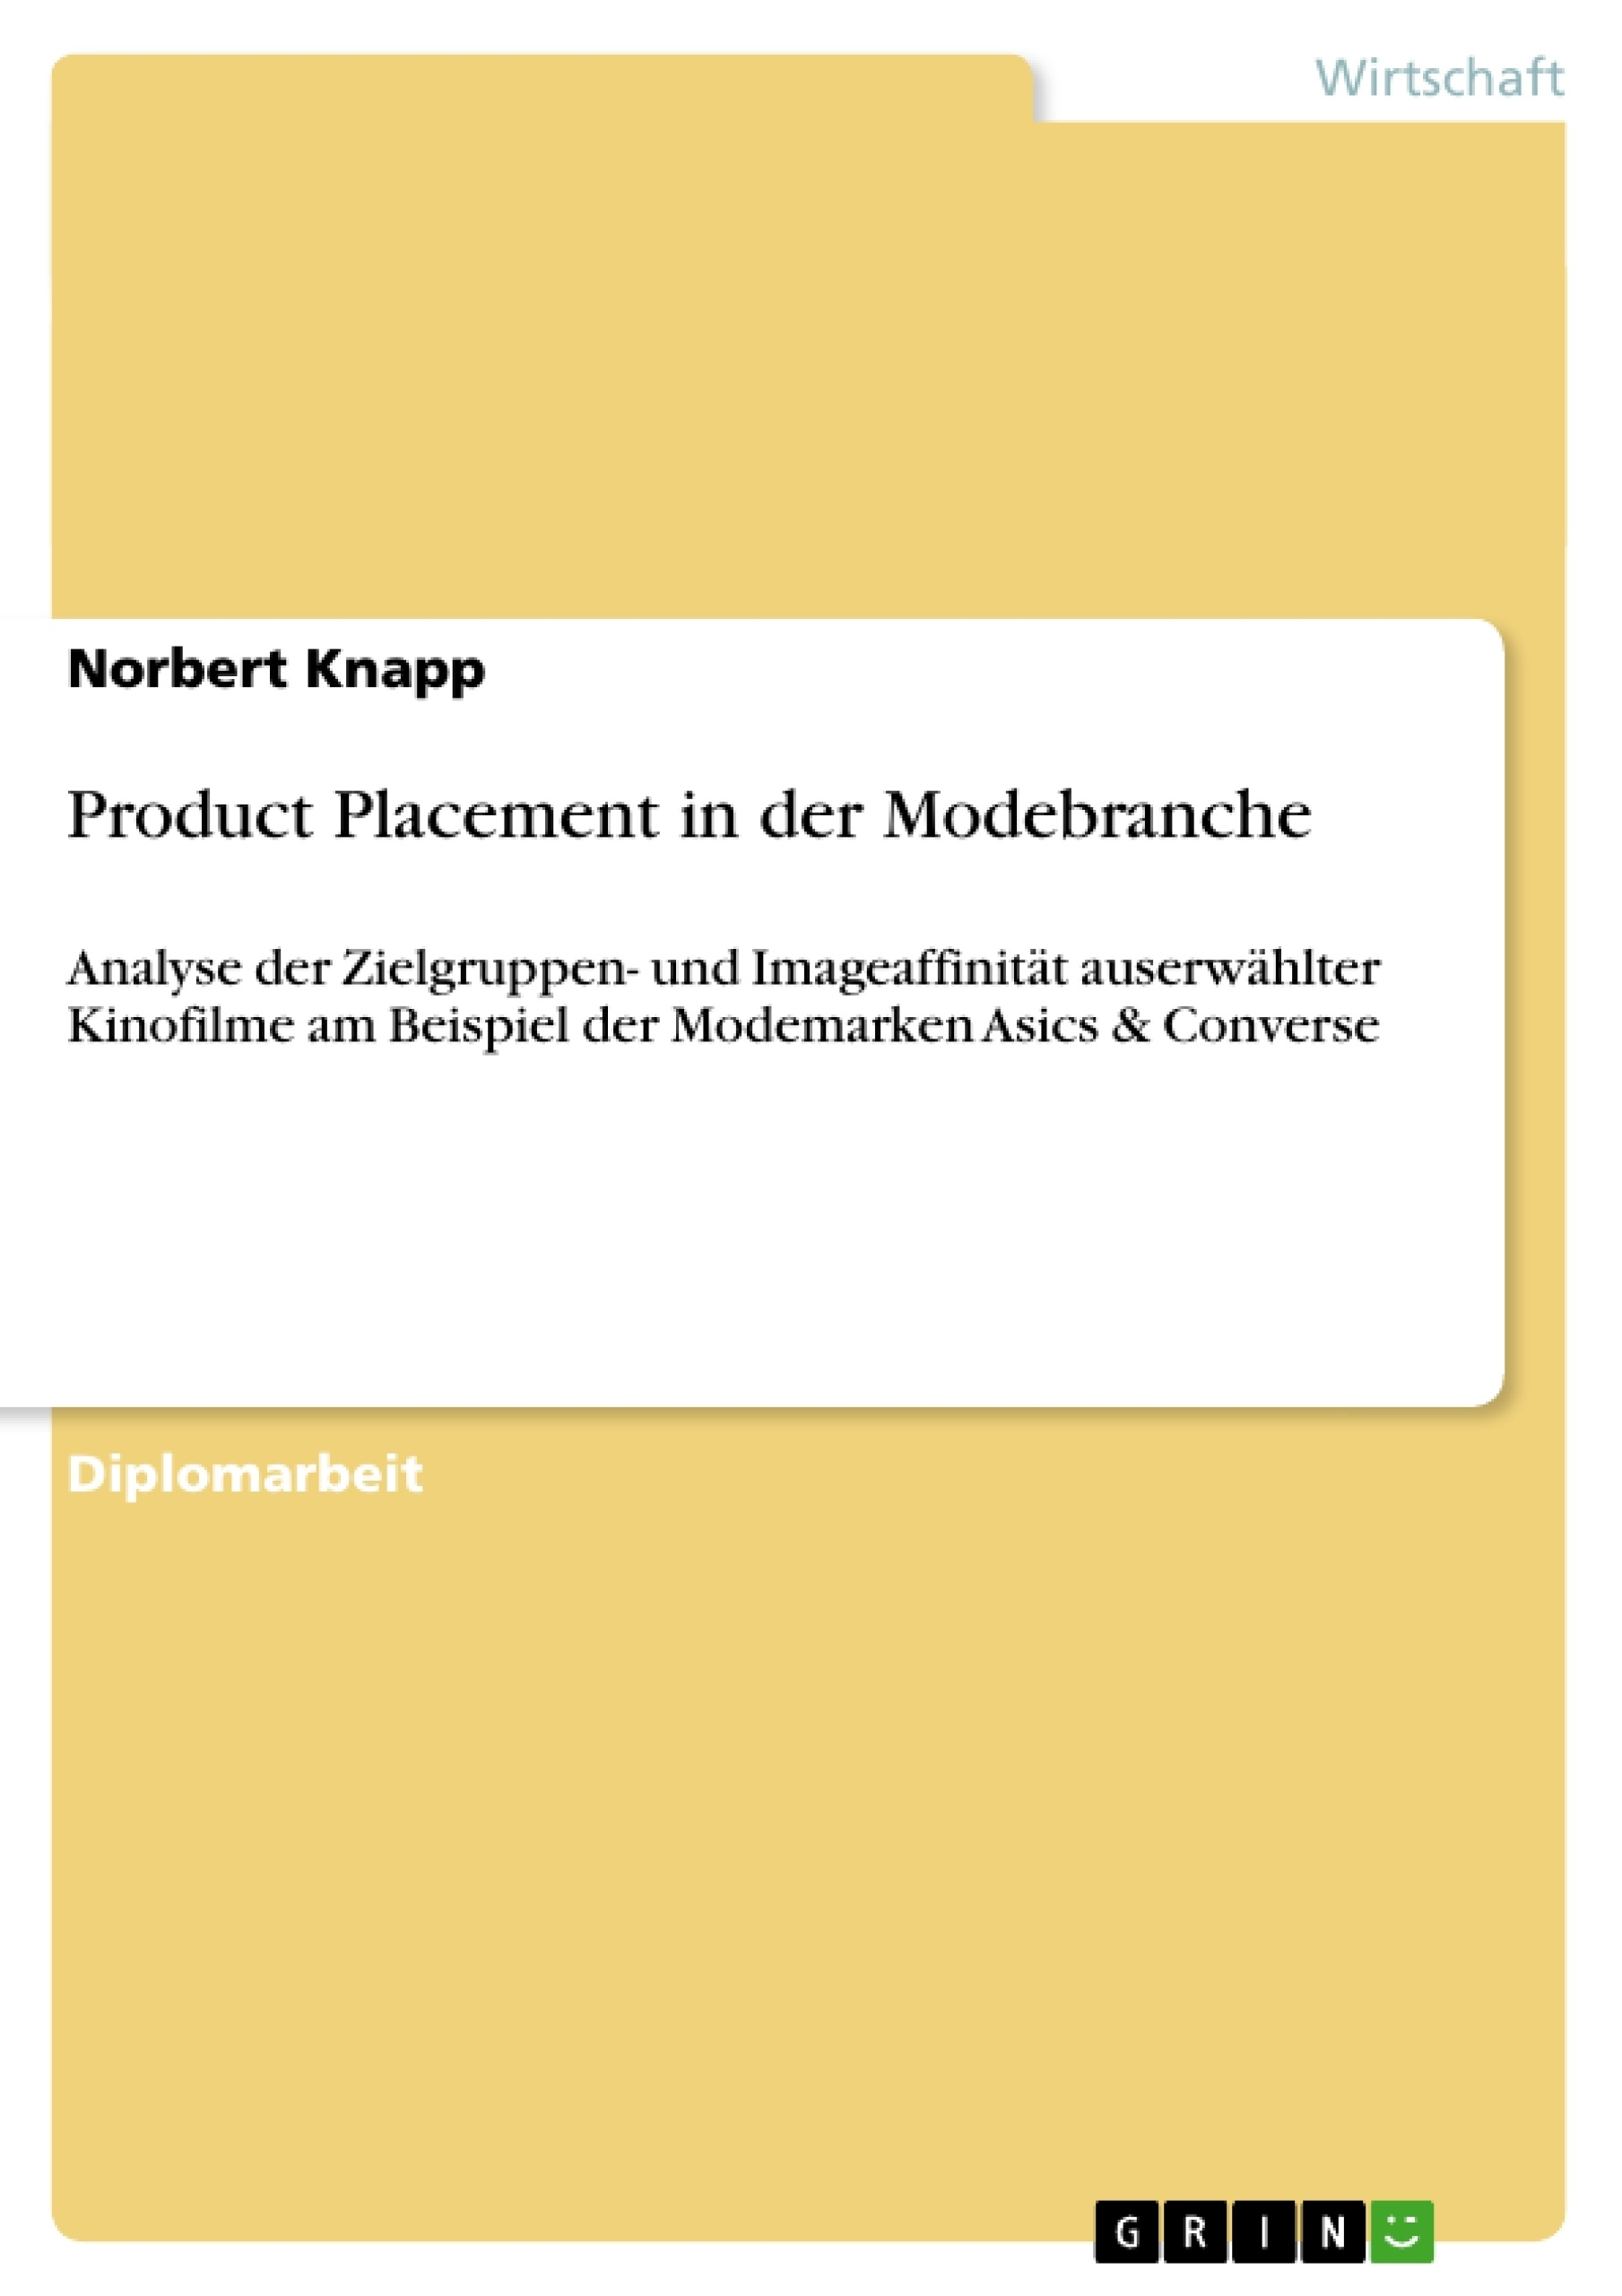 Titel: Product Placement in der Modebranche